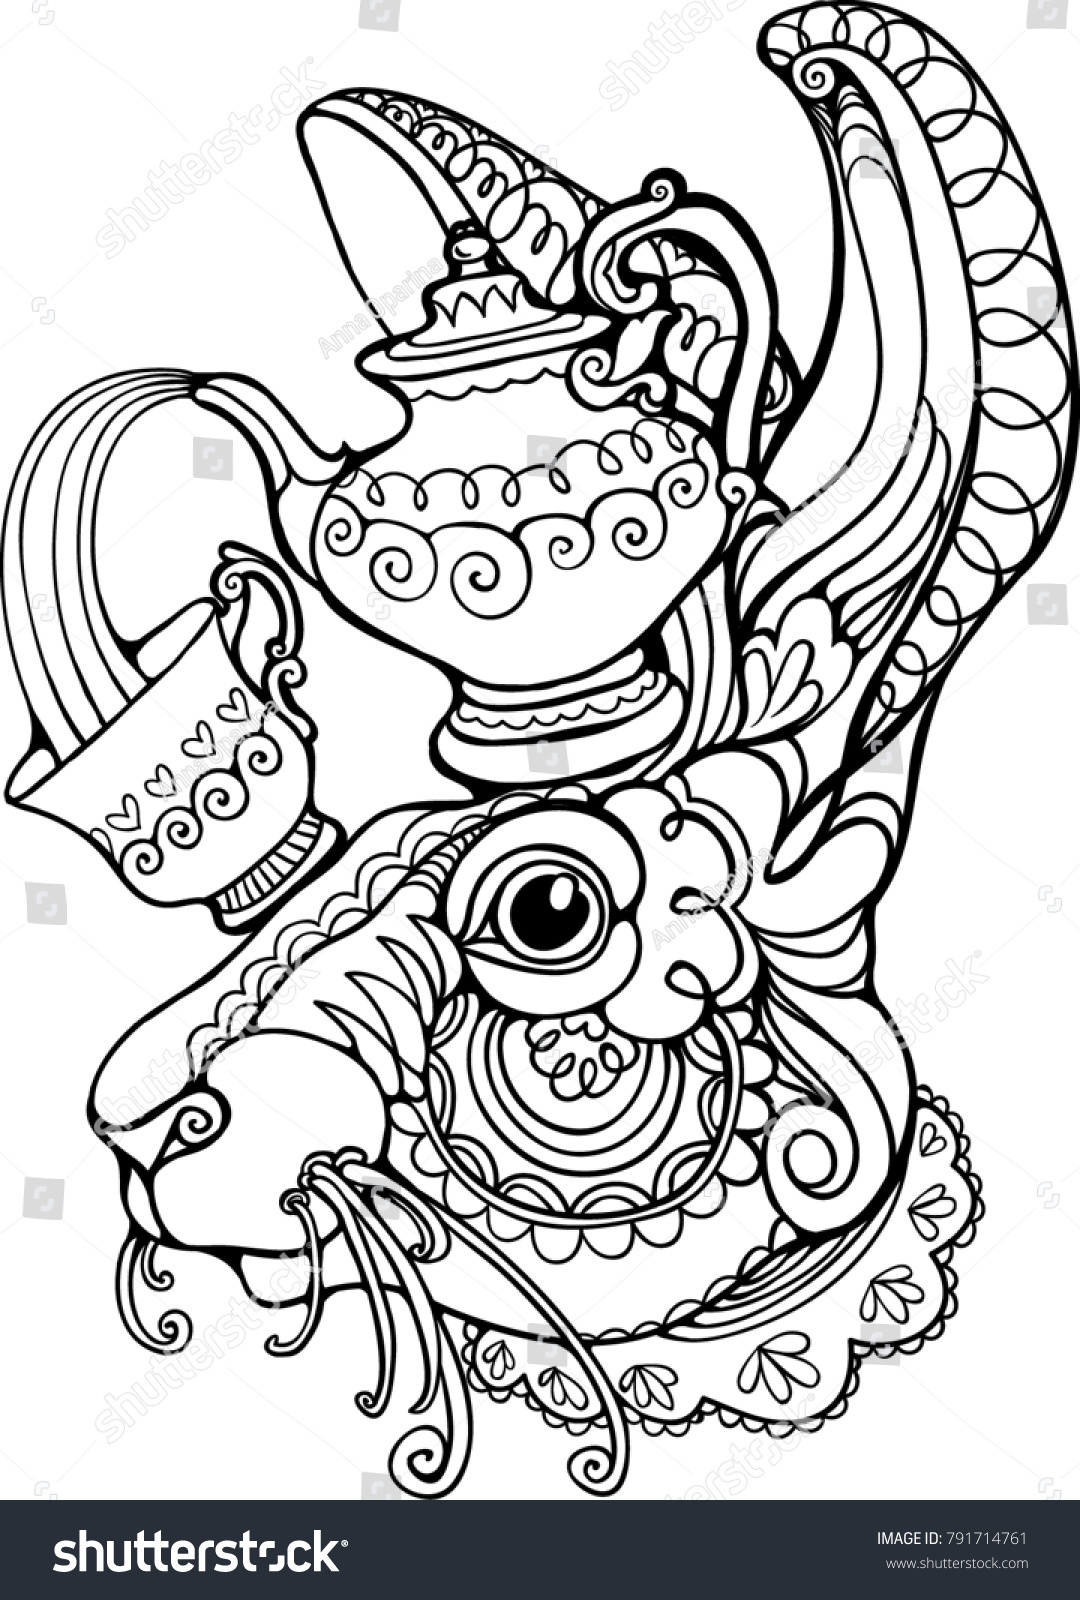 March Hare Mad Tea Party Alice Stock Vector 791714761 - Shutterstock